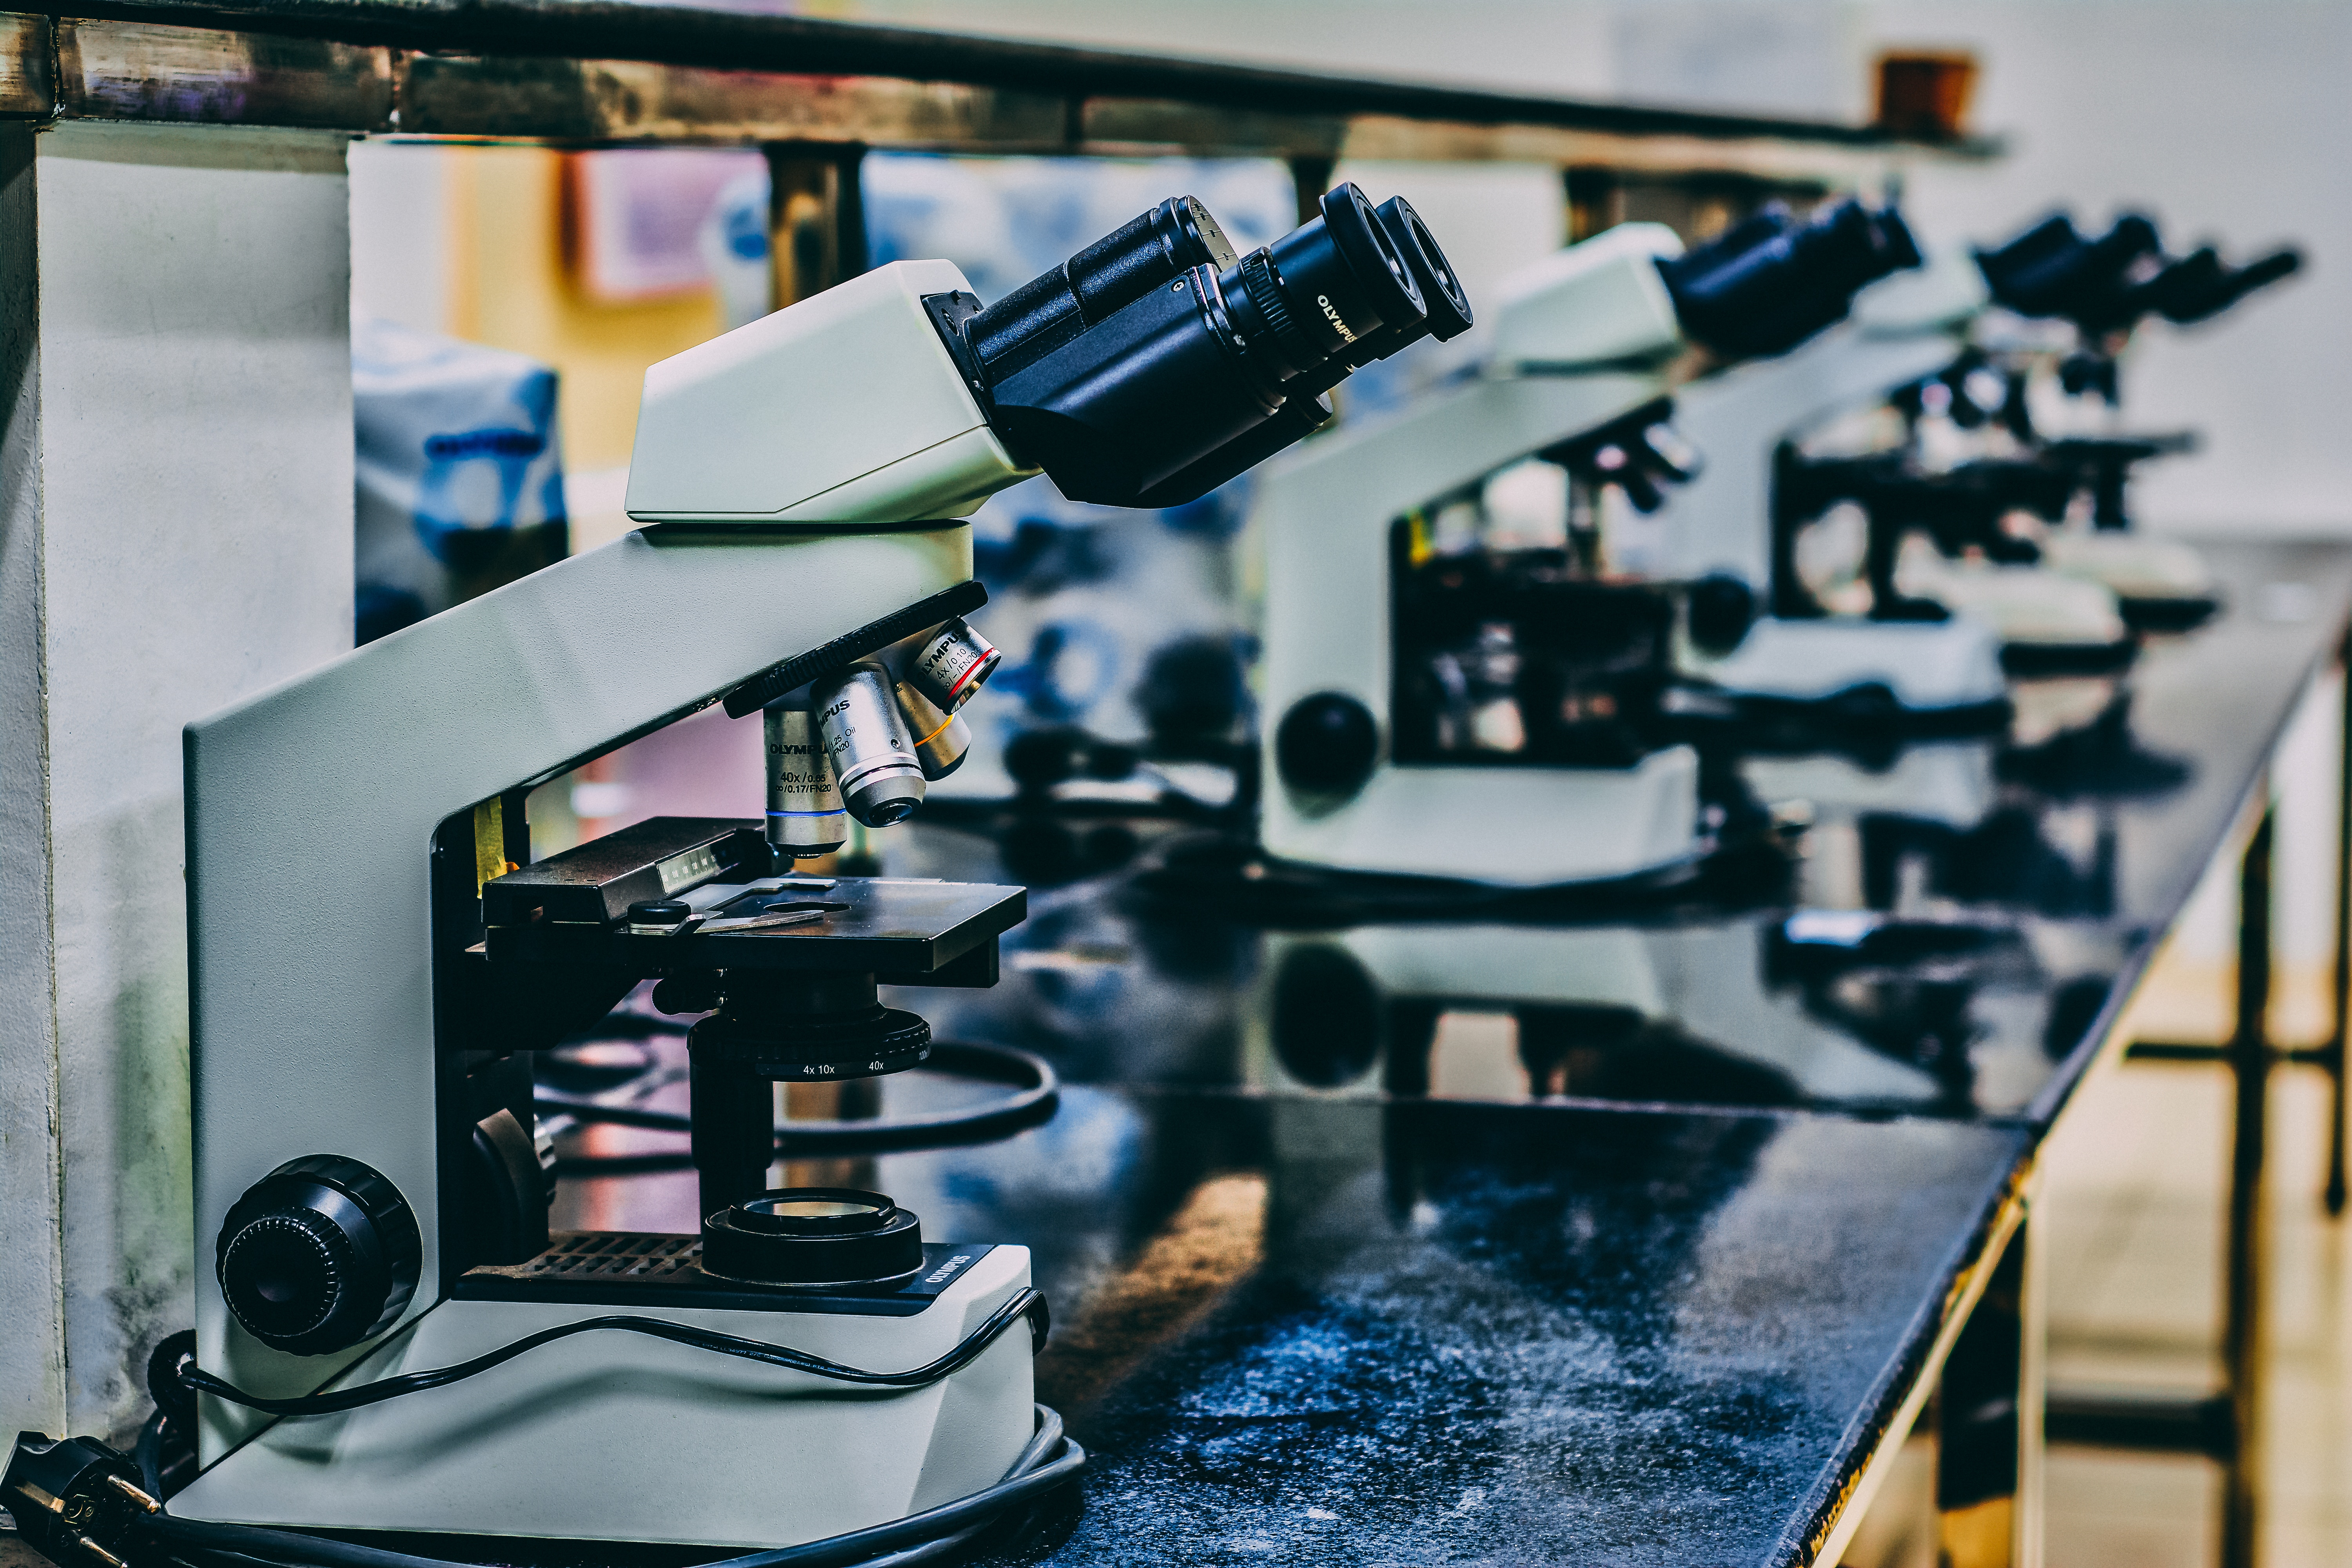 a close-up photo of a row of microscopes in a lab